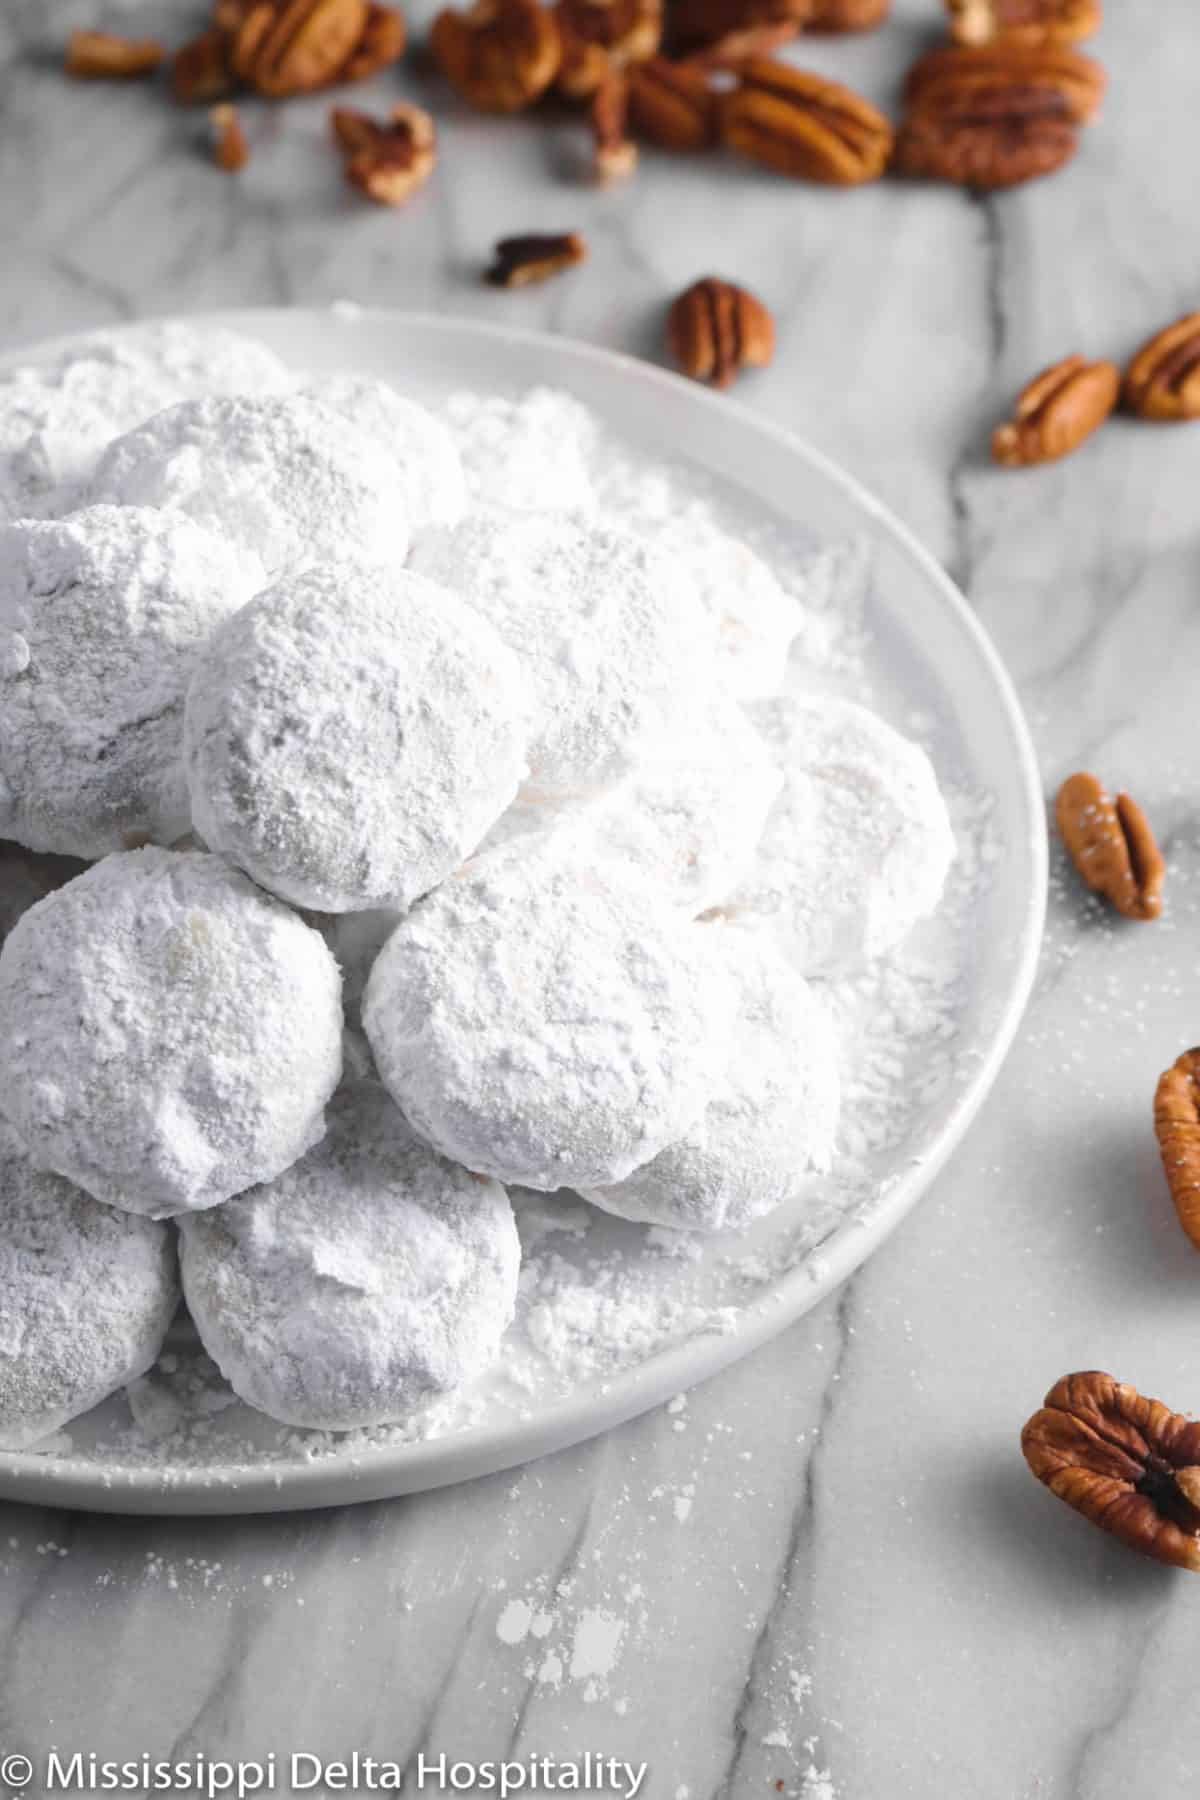 a pile of danish wedding cookies on a white plate